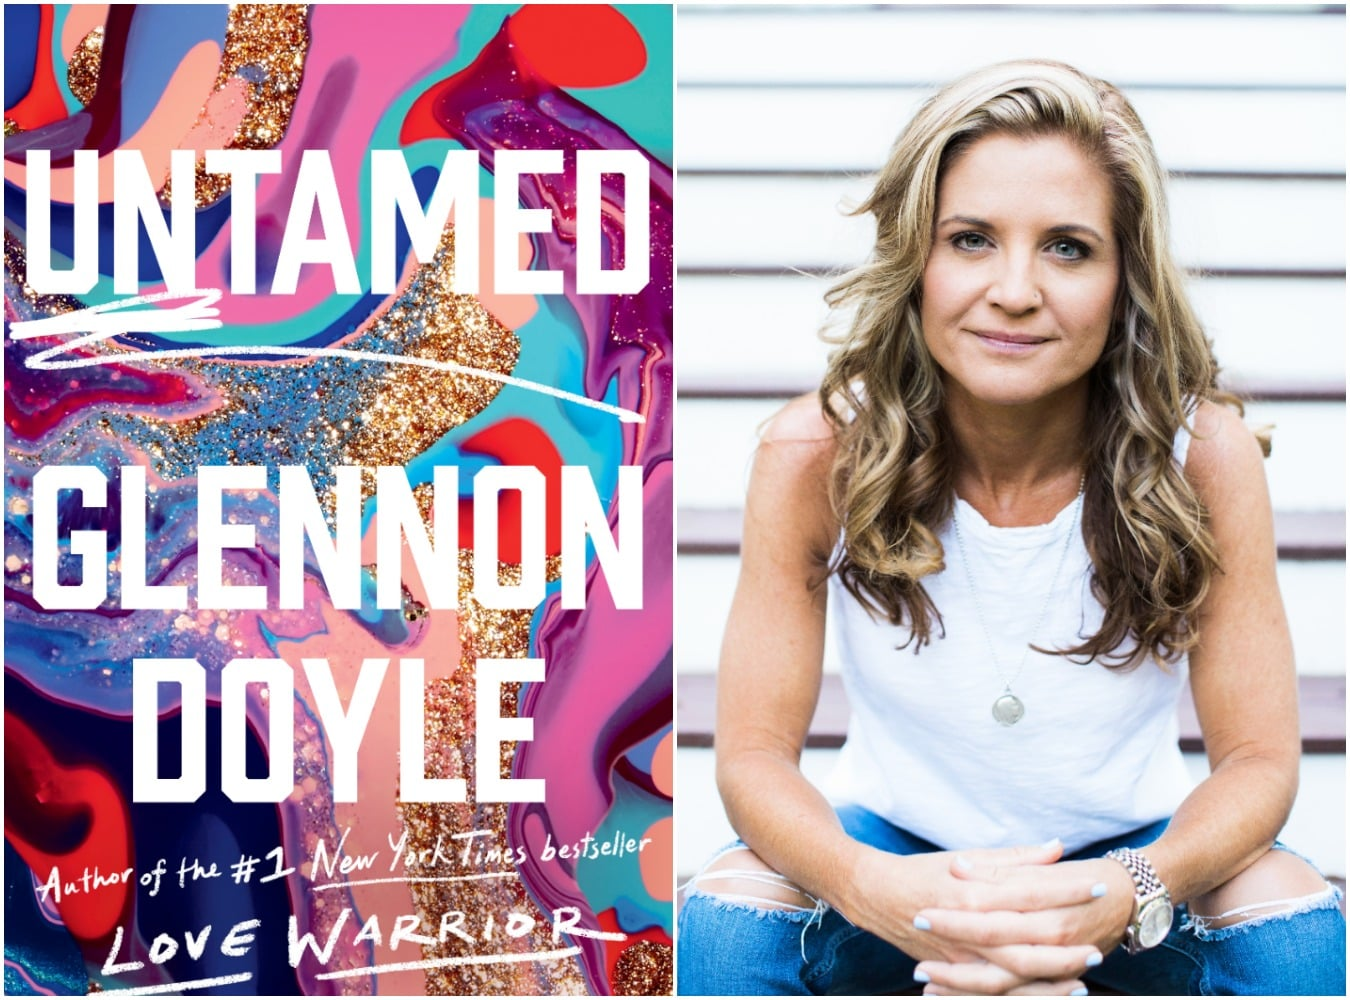 Left image: multicolored glittered background Untamed, Glennon Doyle. Author of the #1 New York Times bestseller Love Warrior. Right image: photo of Glennon, a white woman with blondish brown hair past her shoulders, a white tank top, leaning forward clasping her hands together. Tag: july 2021 self-care